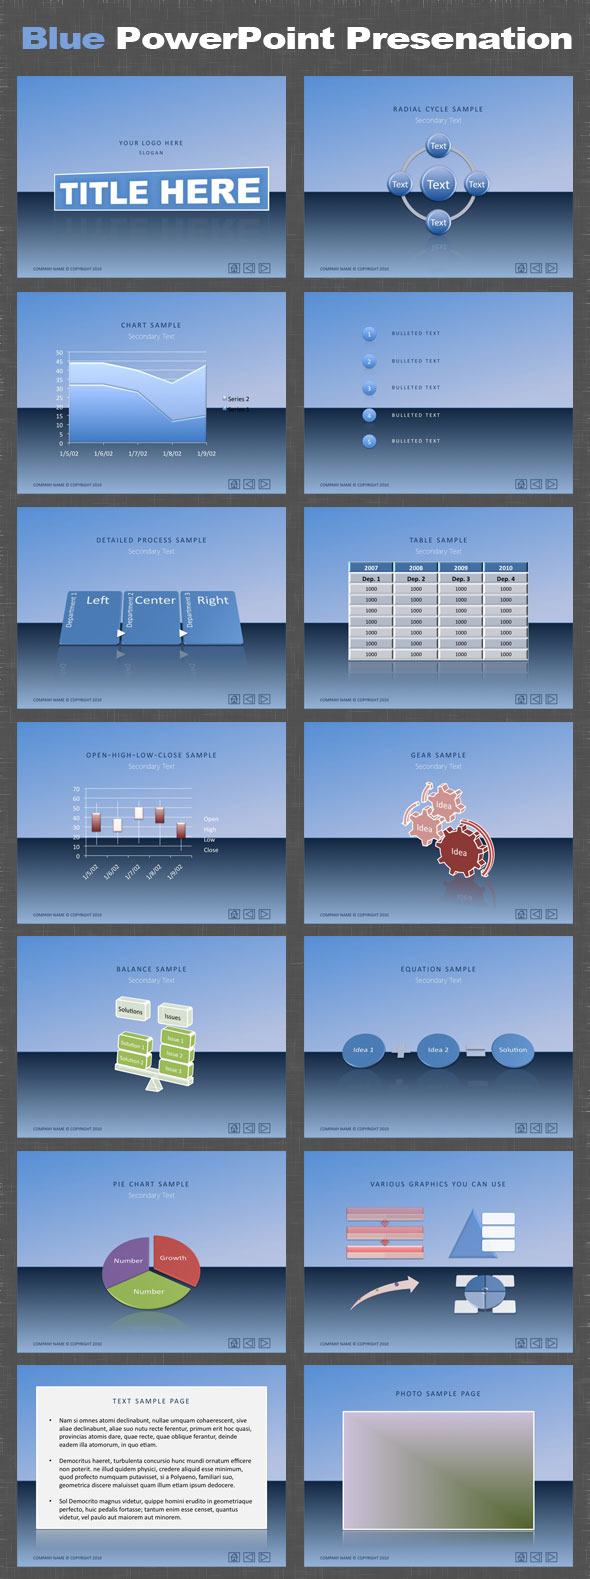 Blue PowerPoint Presentation - Powerpoint Templates Presentation Templates